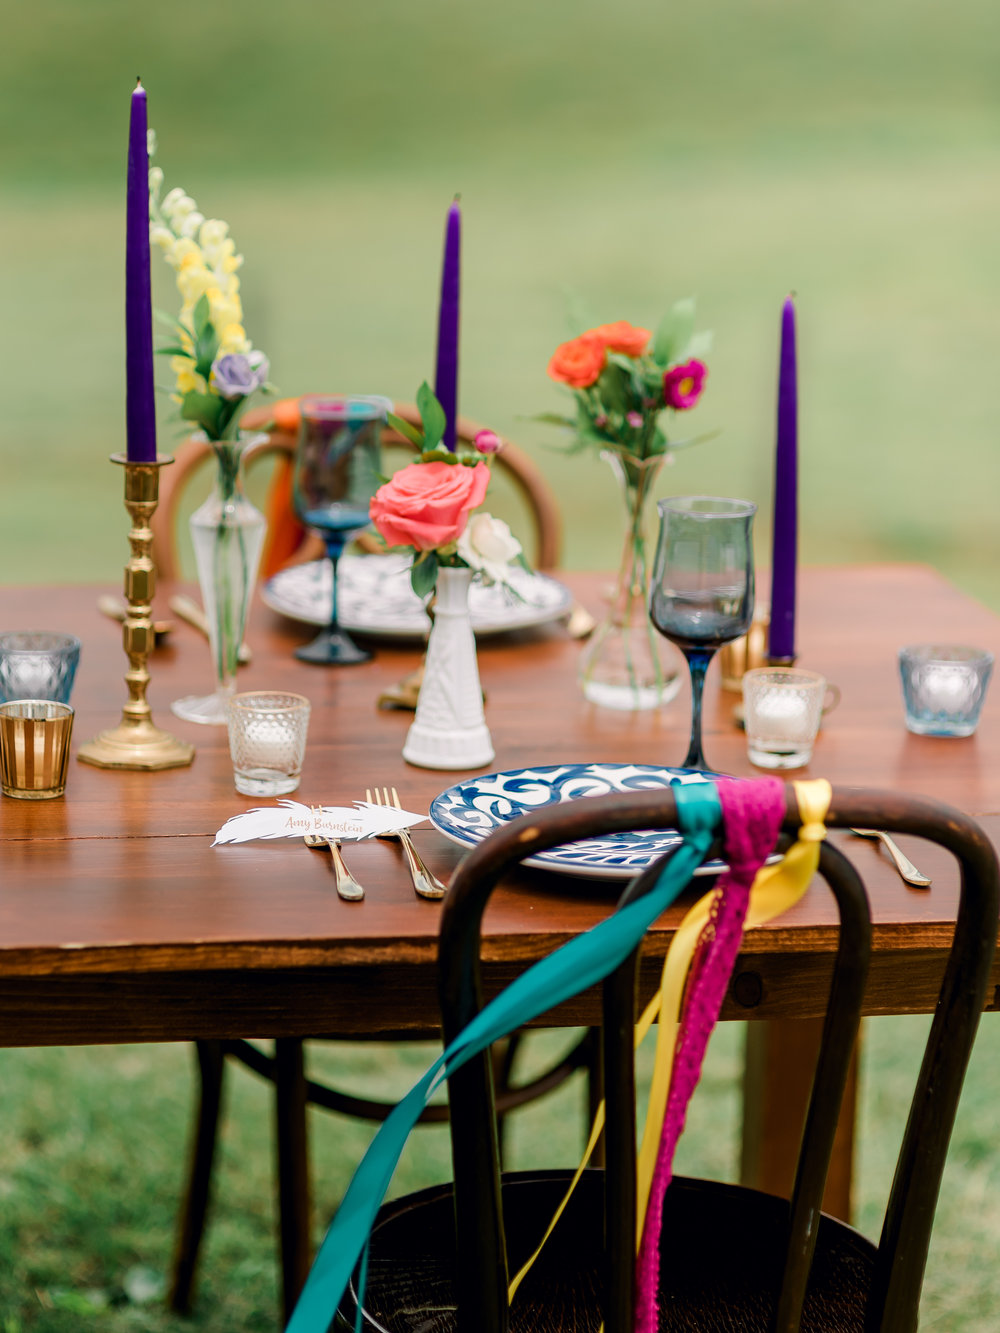 Colorful Farm Table Setting.jpg